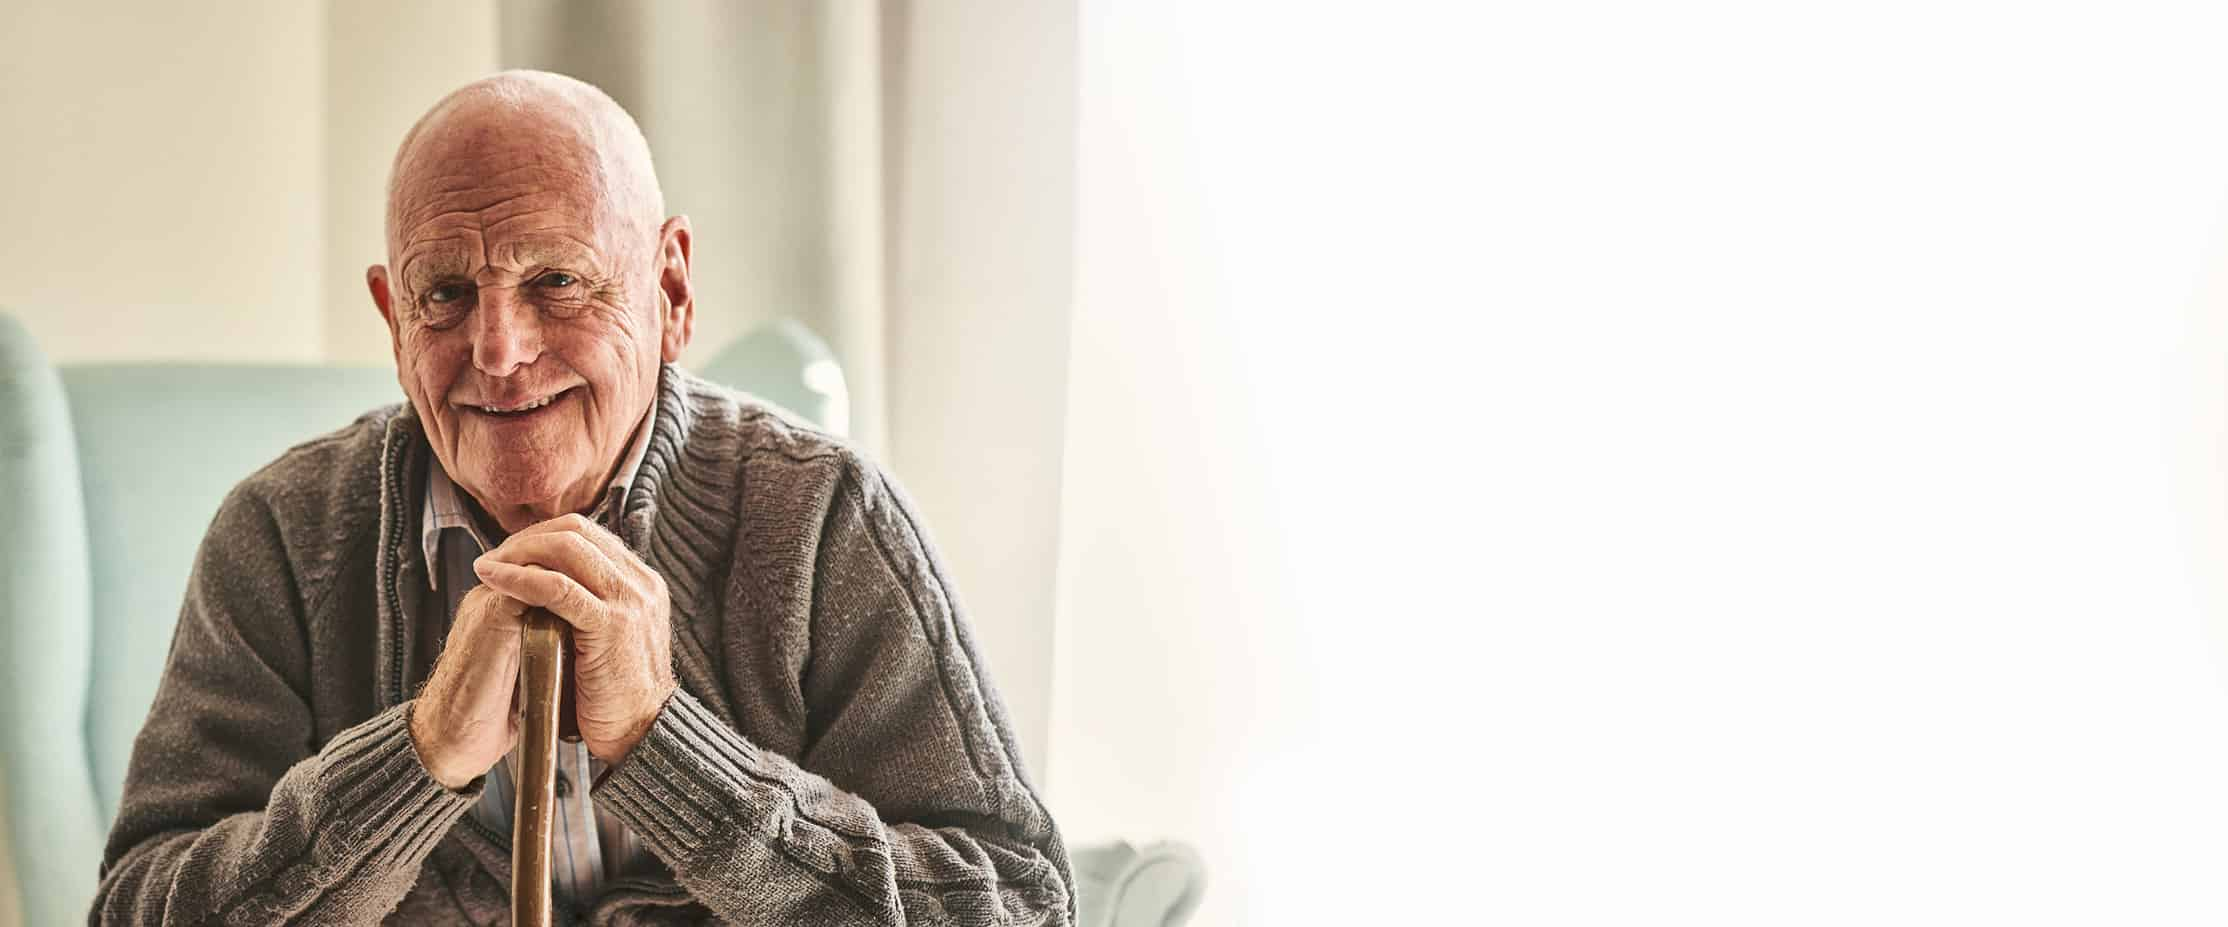 Elderly Man Sitting Down Happy with Care Smiling - Header Image